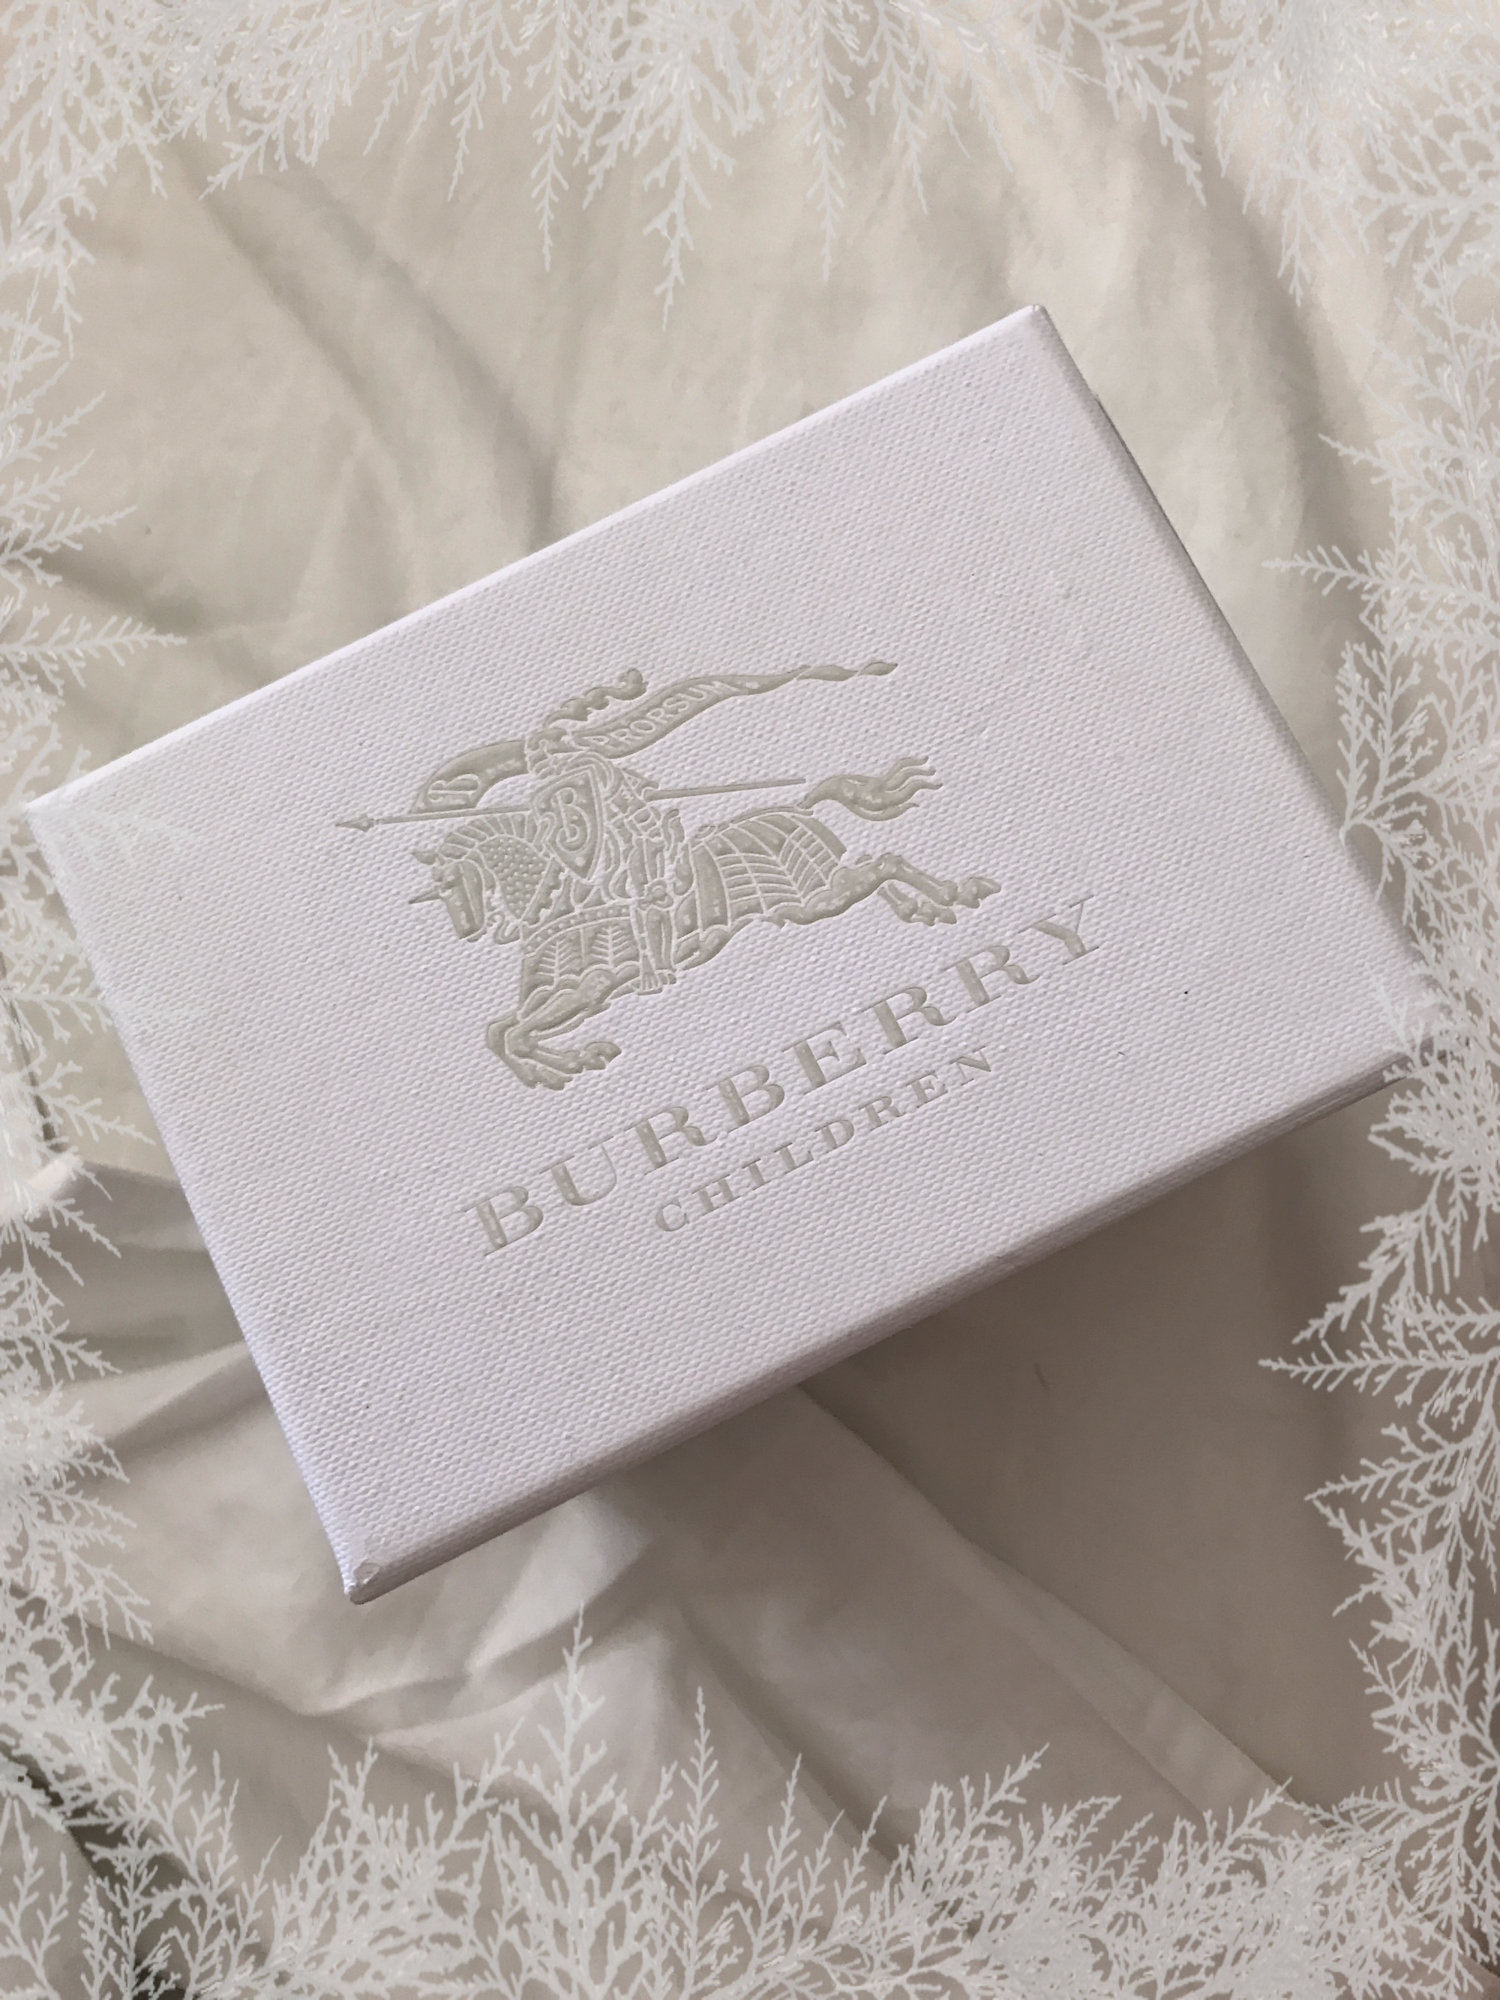 burberry-box-lid